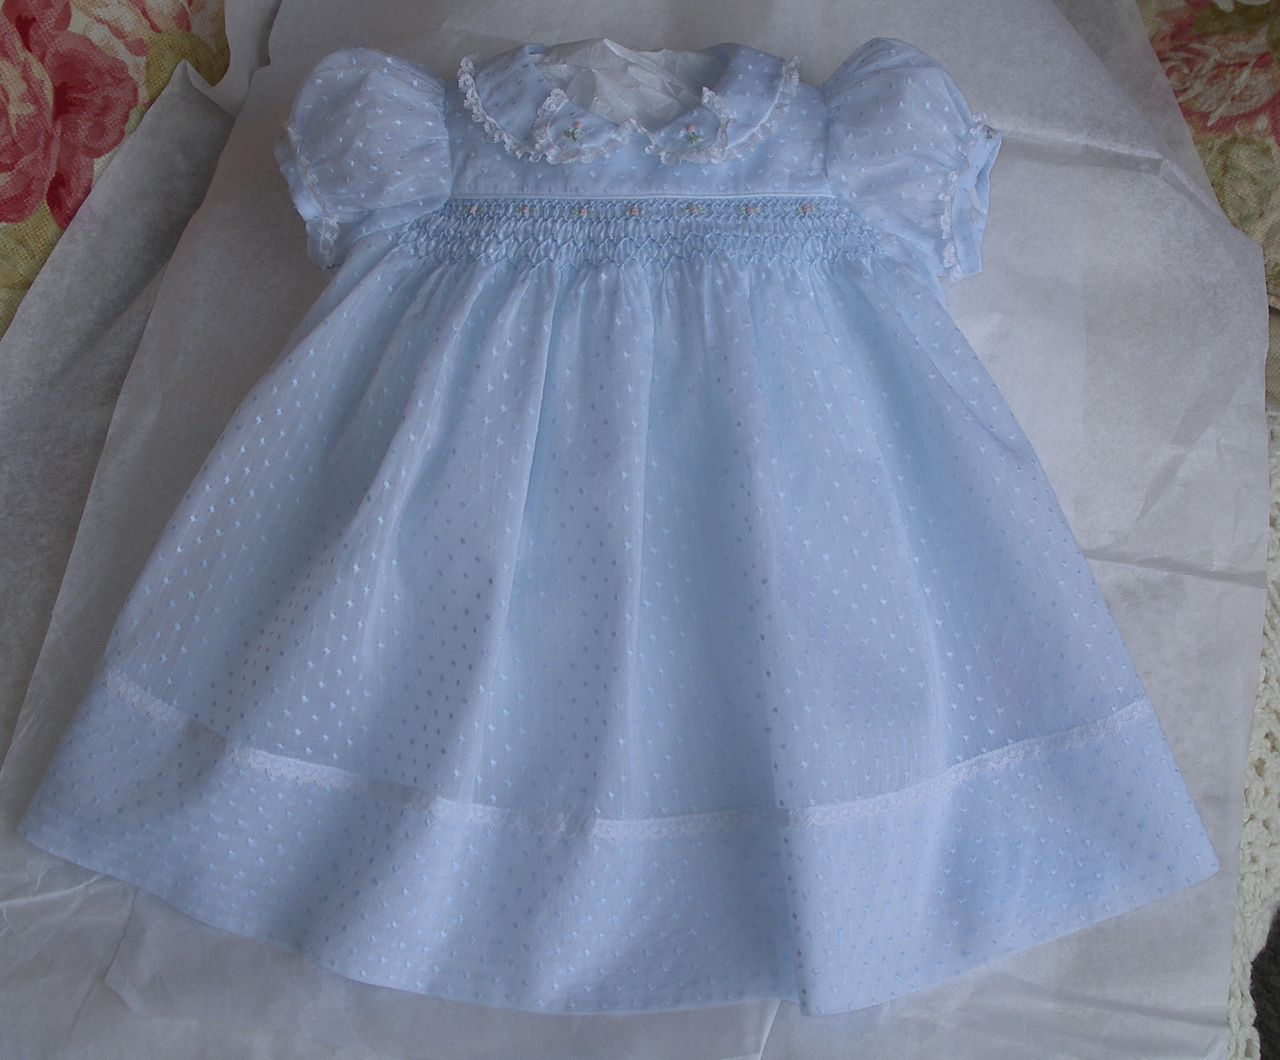 9361af88fc773 The Old Fashioned Baby Sewing Room: Emma's Smocked Baby Dress in Blue  Dotted Swiss